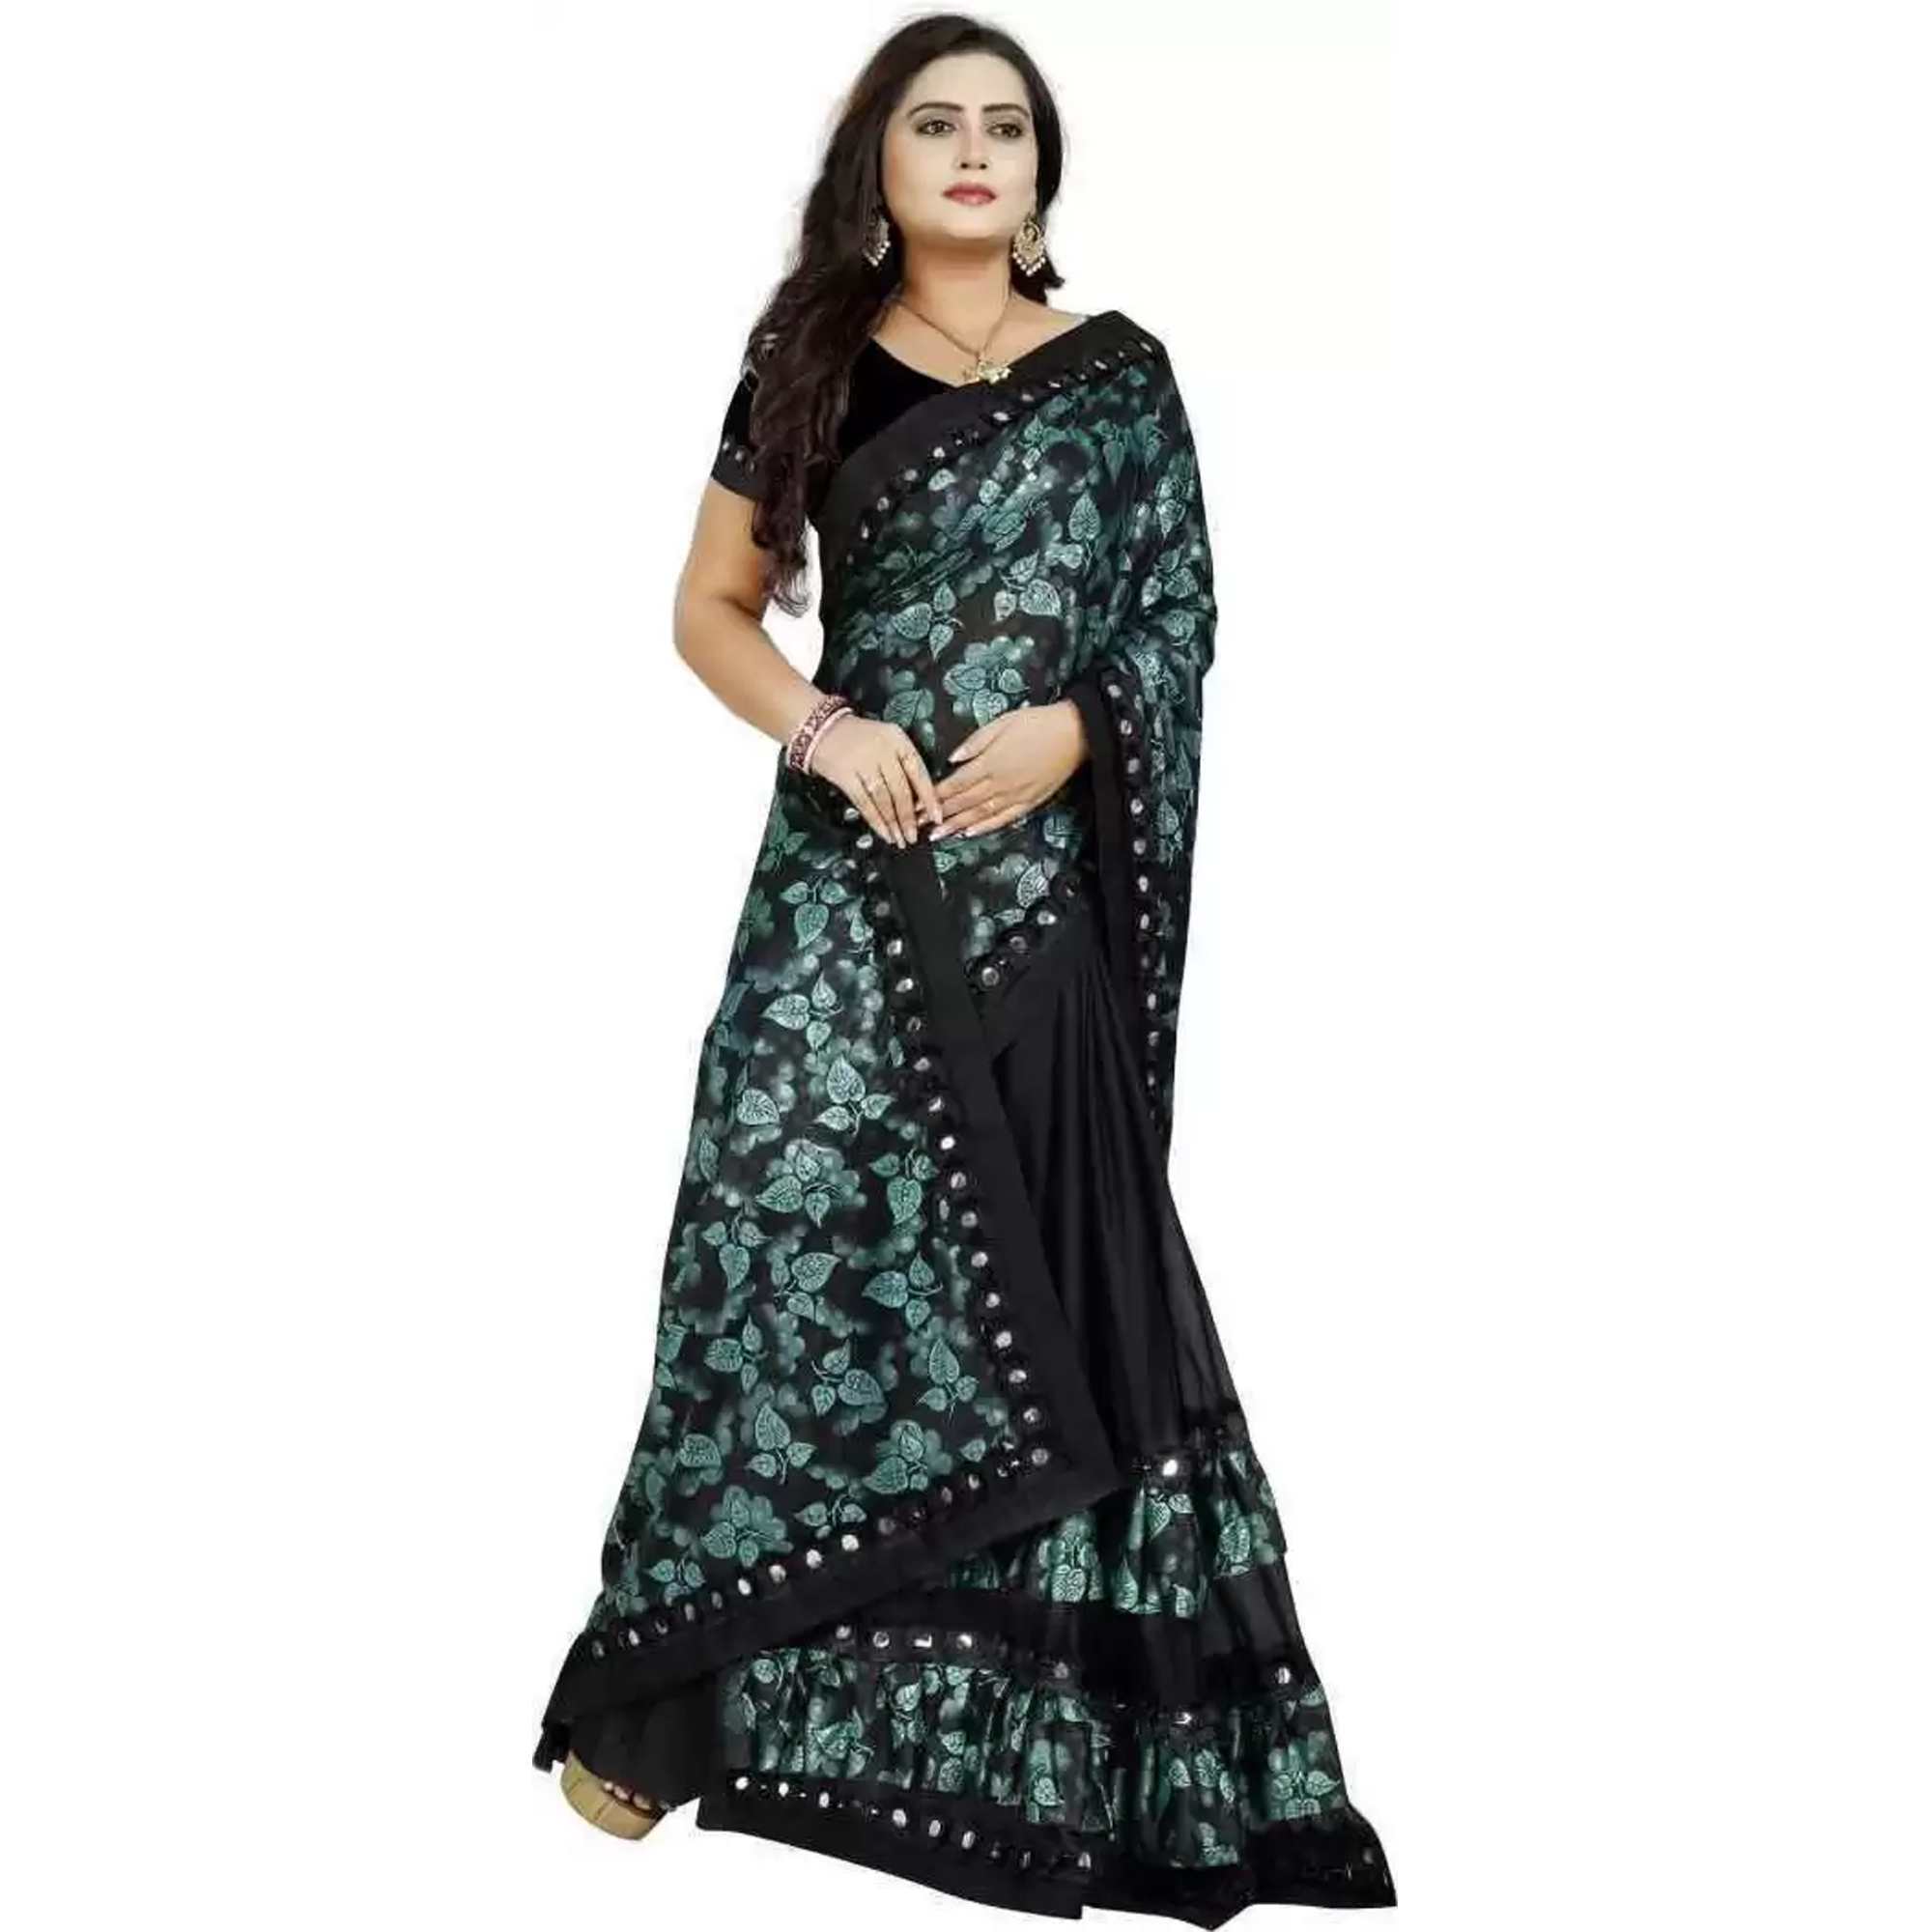 Preferable Black Colored Partywear Floral Ruffle Lycra Blend Saree